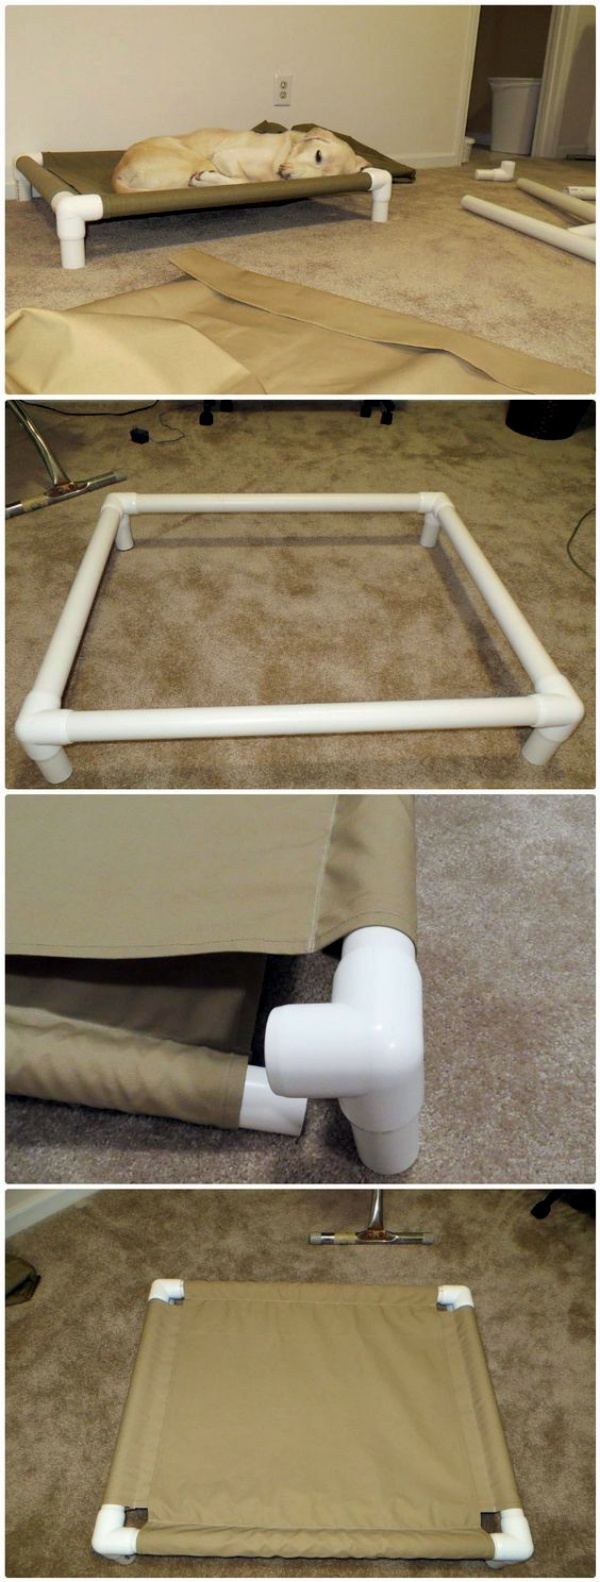 30 creative diy pvc pipe projects for Diy pvc projects